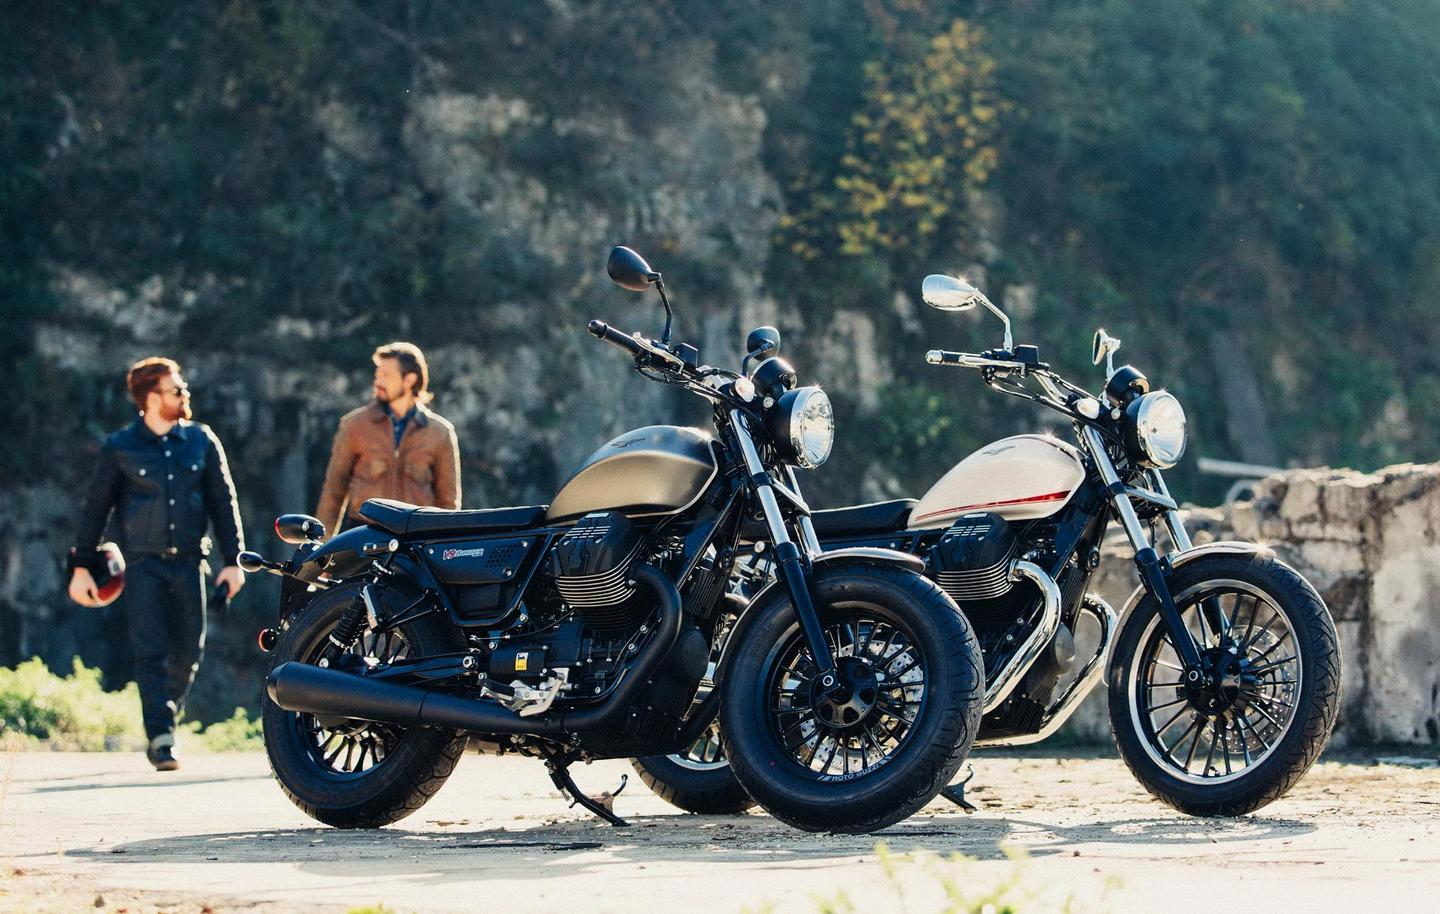 Moto Guzzi introduces a new engine platform, initiated by two new models, the V9 Roamer and Bobber